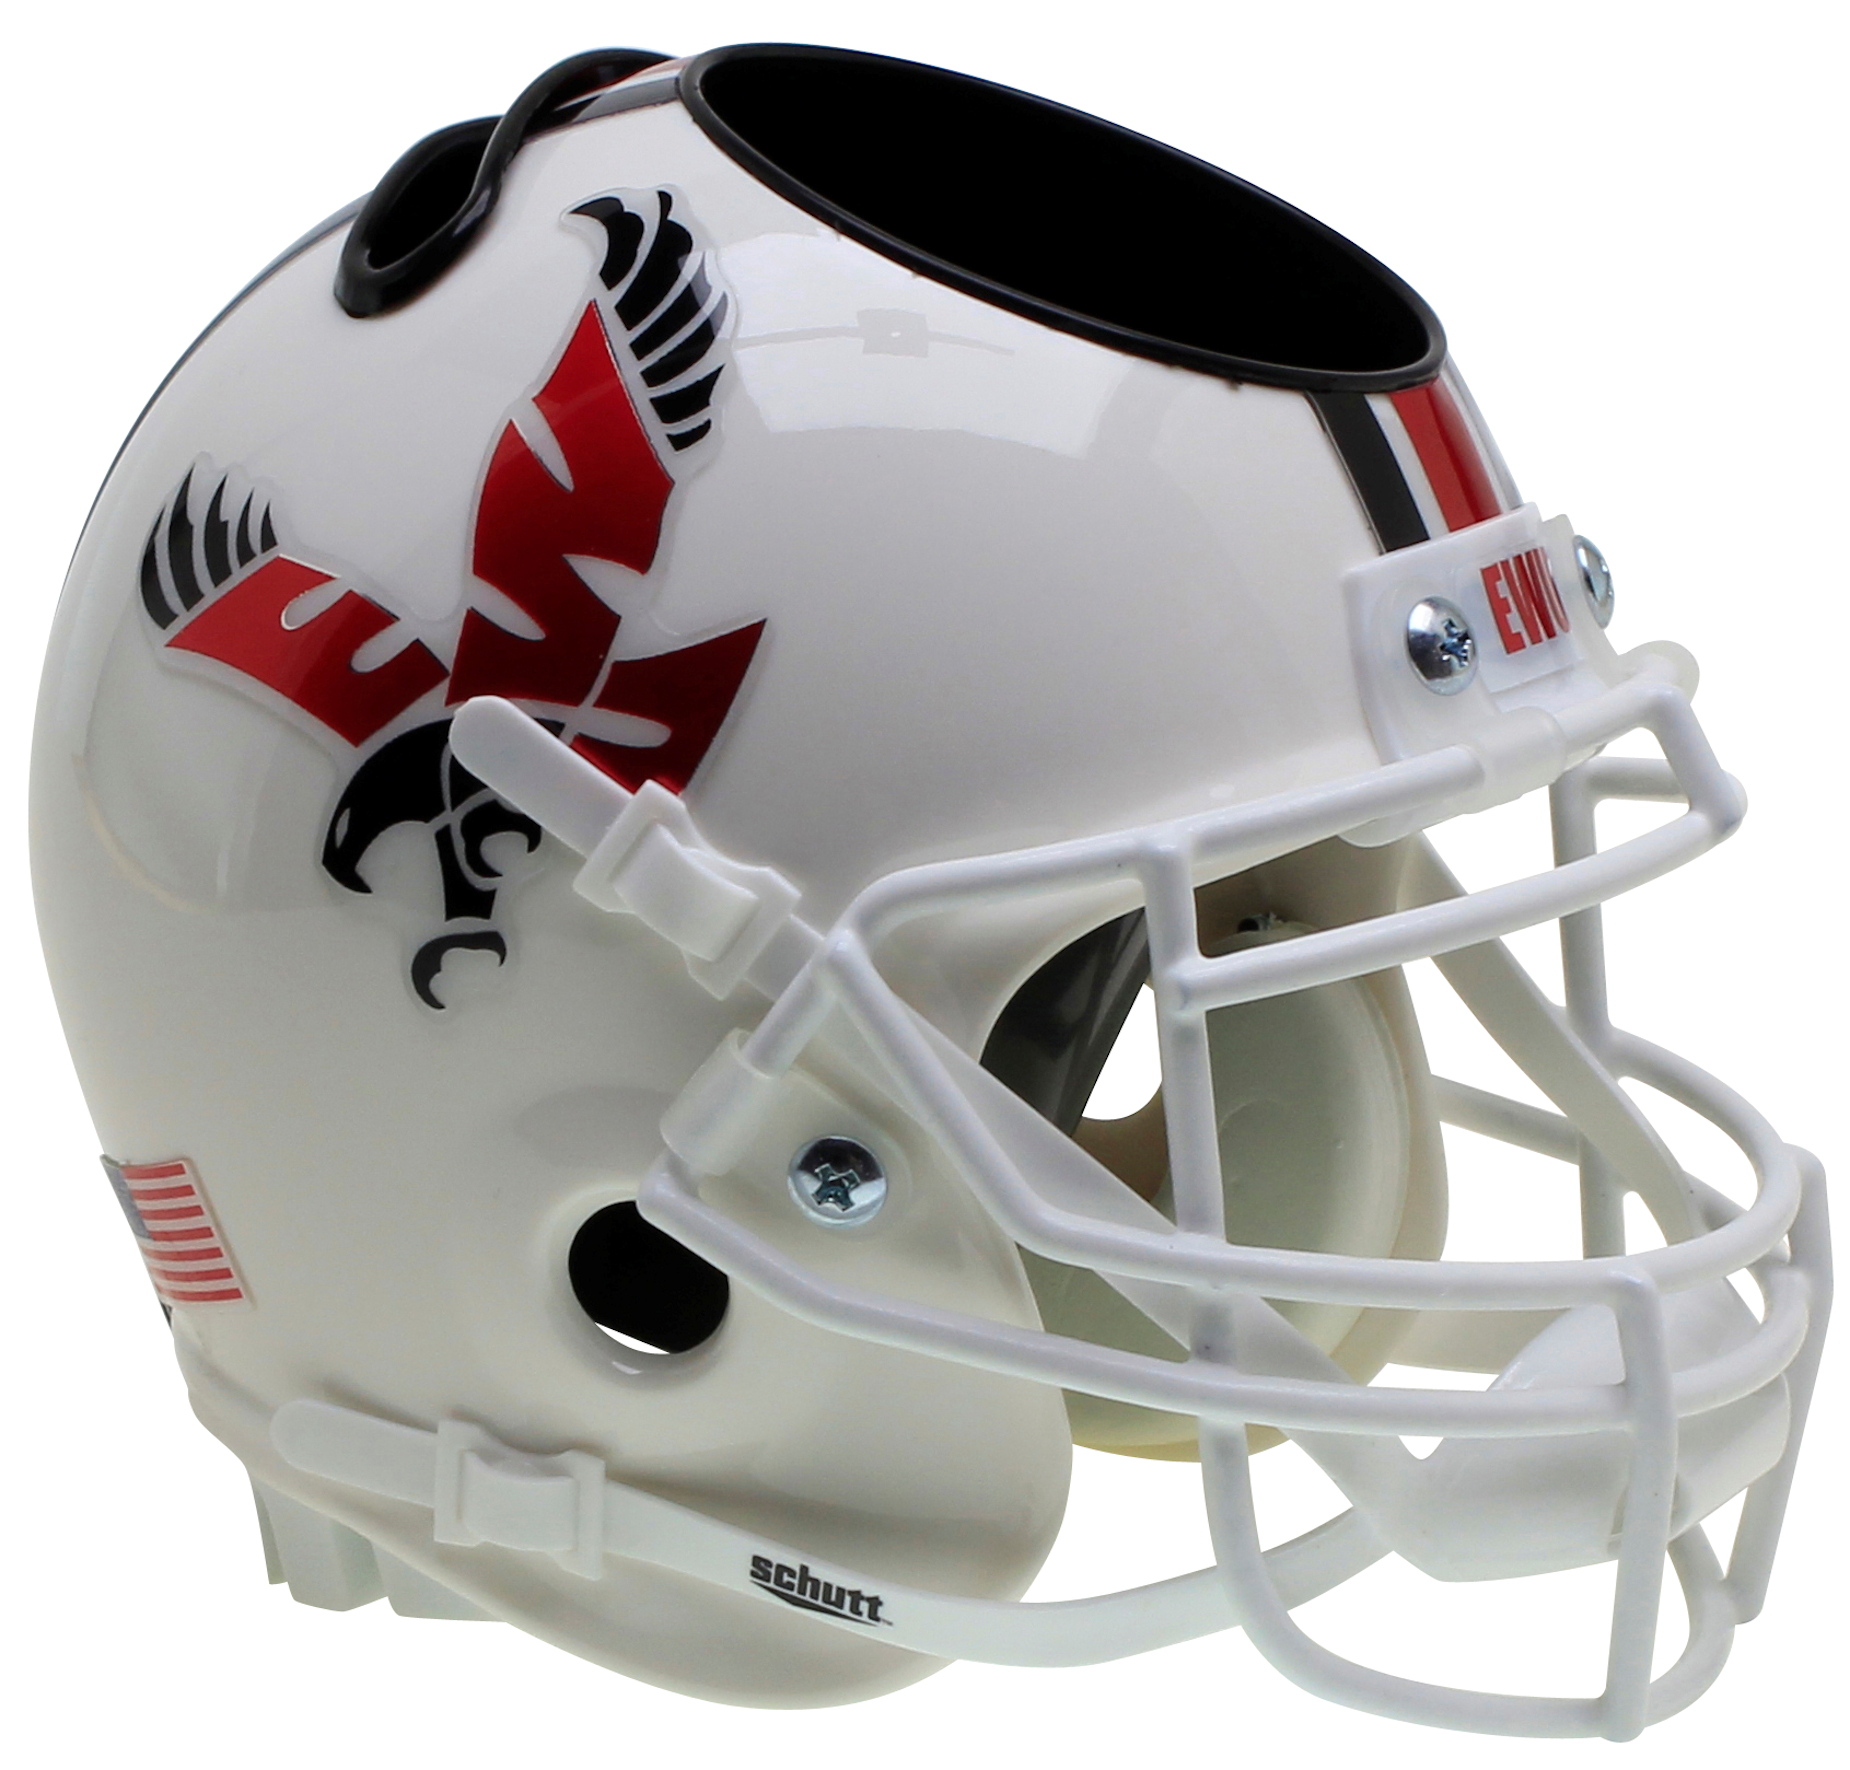 Eastern Washington Eagles Miniature Football Helmet Desk Caddy <B>White with Chrome Decal</B>